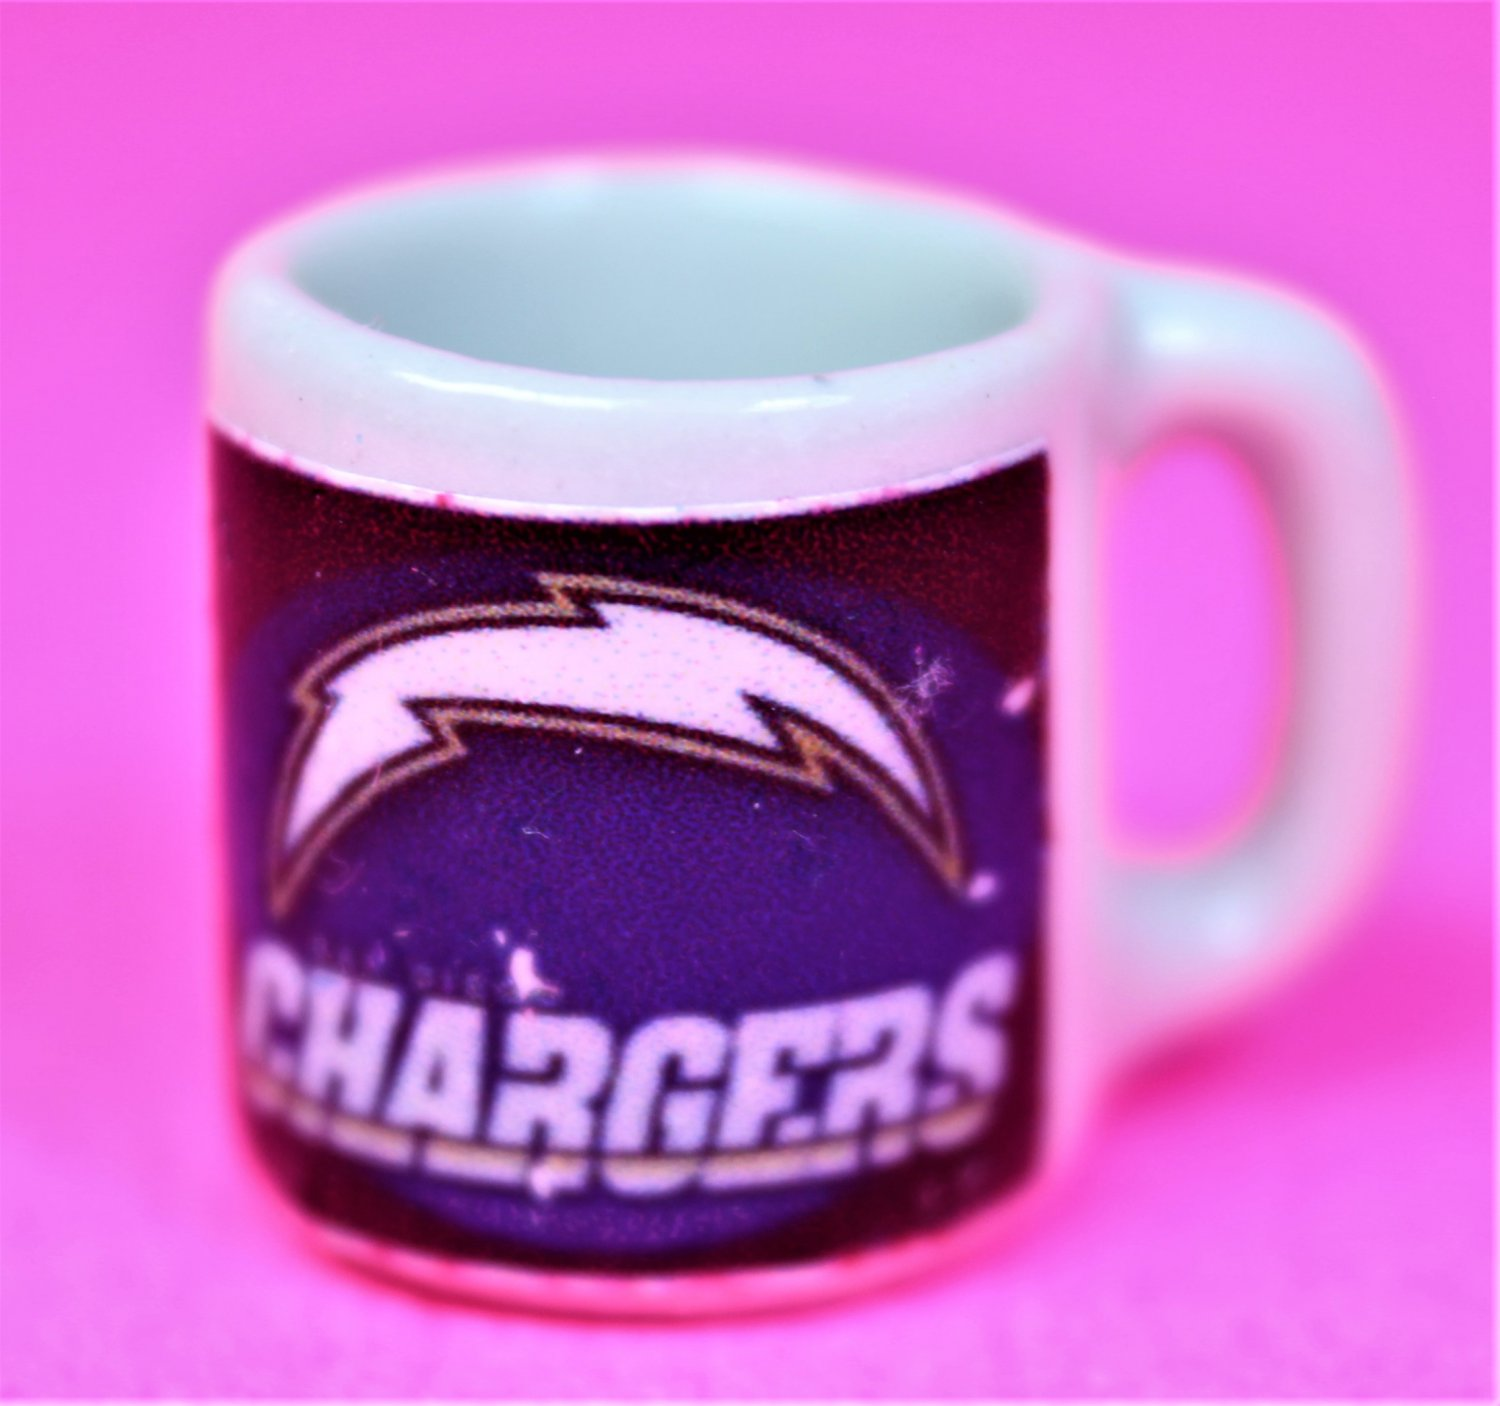 "Dollhouse miniature size 1/12"" scale replica Chargers sports coffee mug"